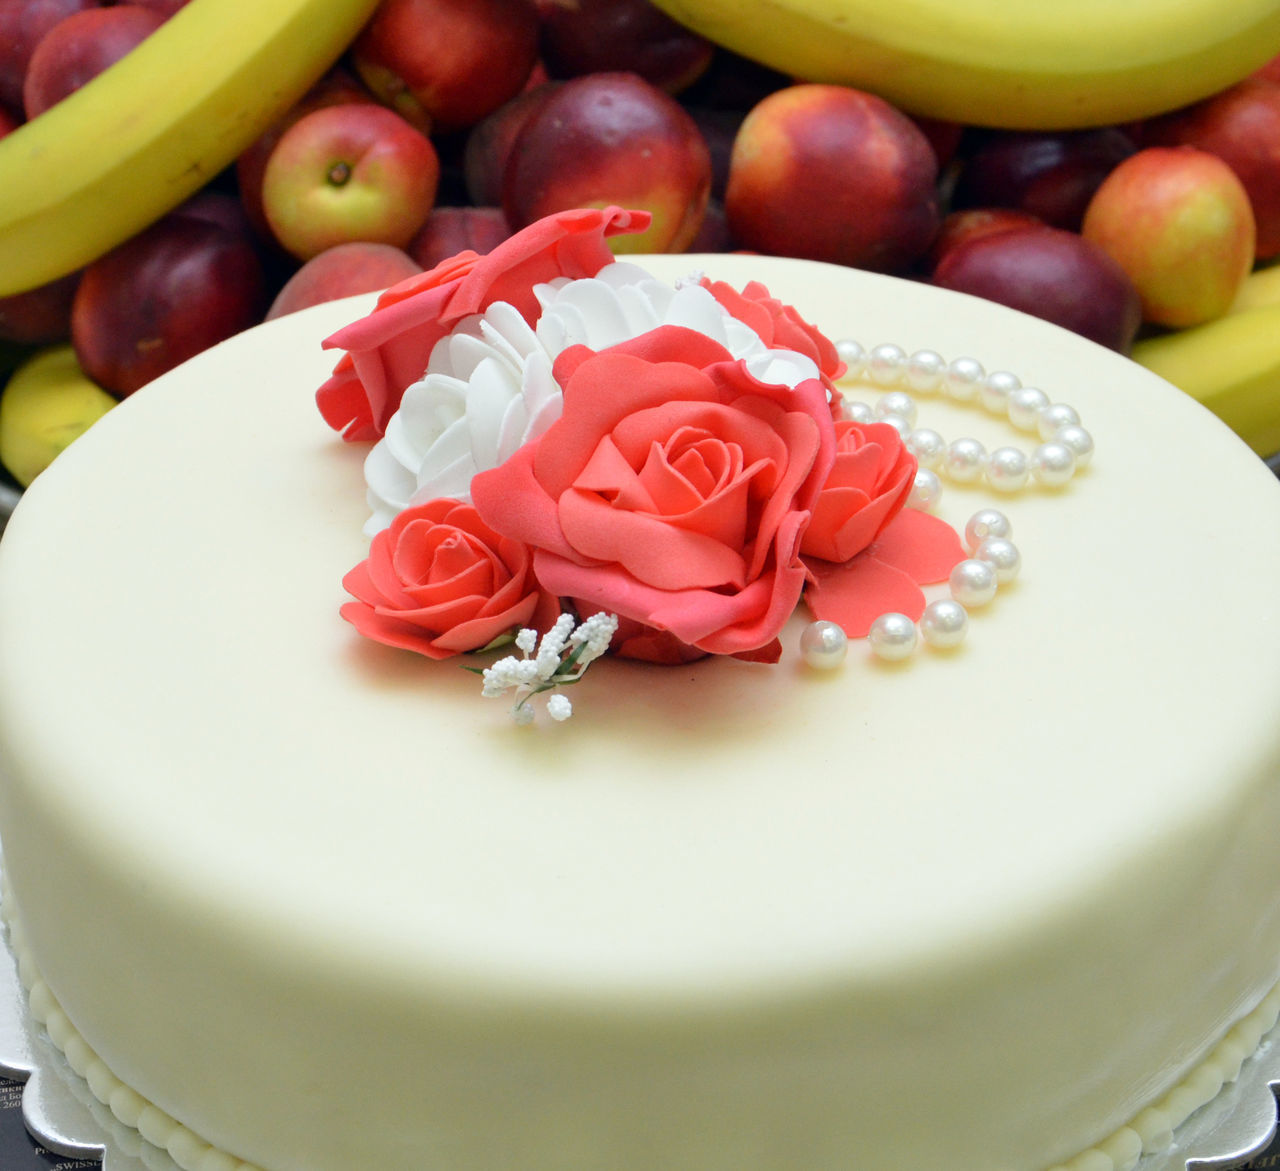 white wedding cake with flowers Cake♥ Close-up Day Flower Freshness Indoors  No People Pearl Pink Rose Ready-to-eat Roses🌹 Wedding Wedding Cake White Cake